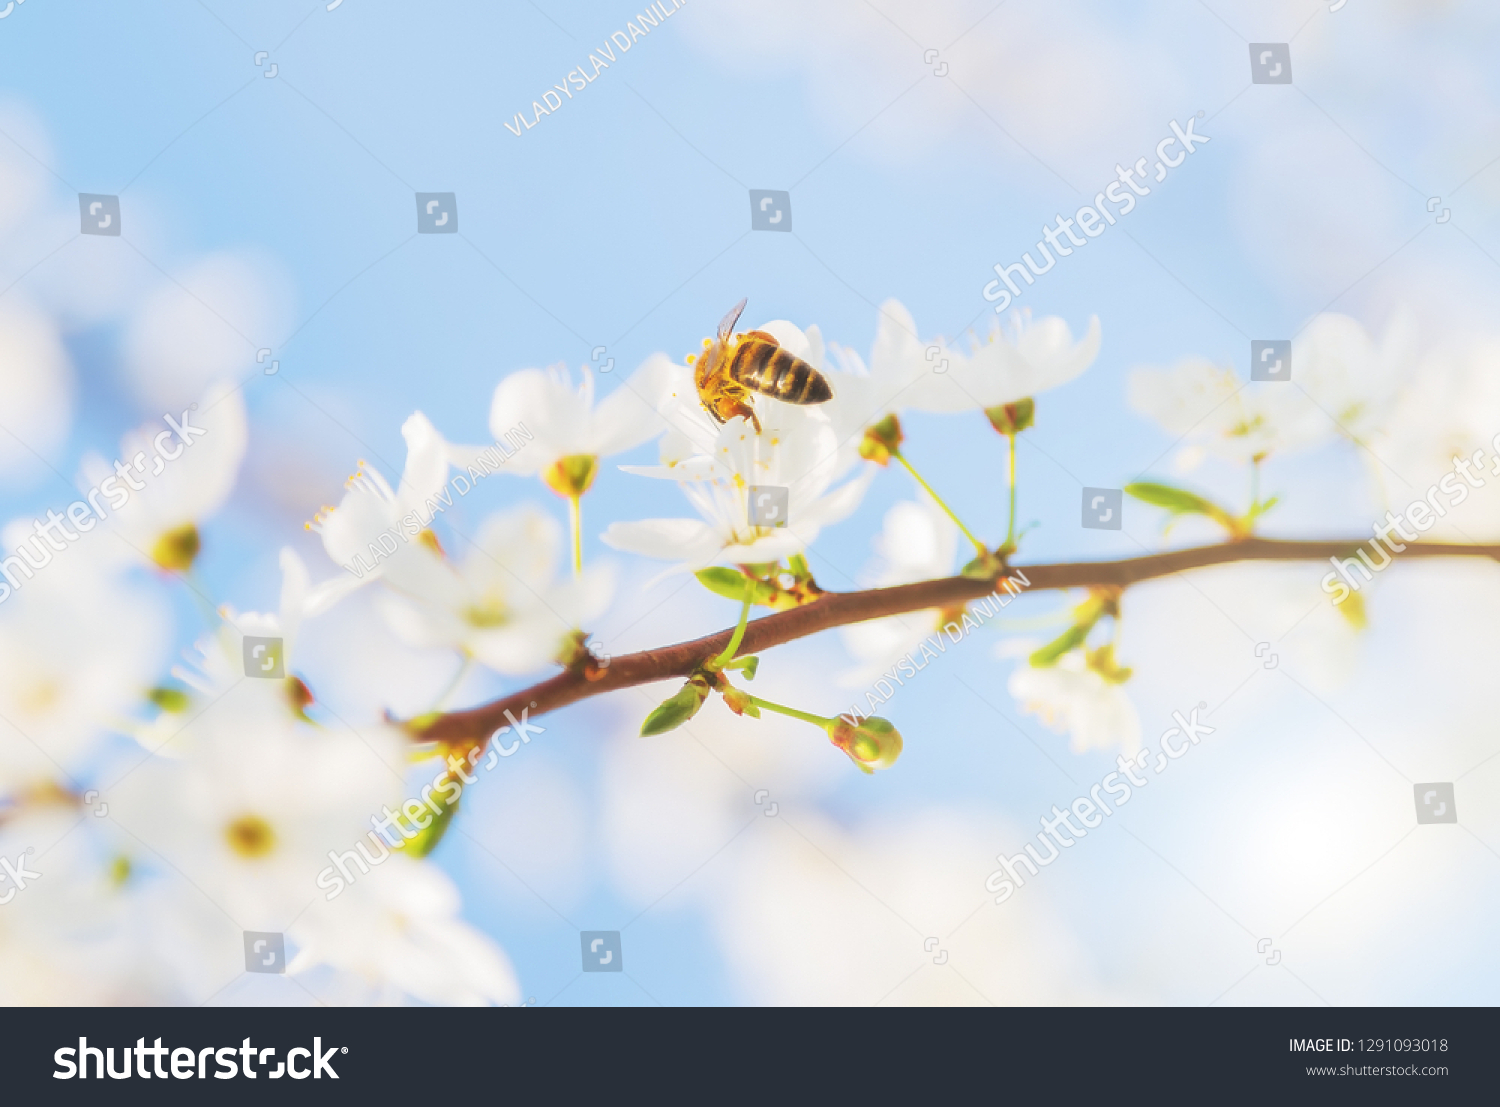 Nature 10x8 FT Vinyl Photography Backdrop,Sweet Honey Bees Wax Abstract Insect of Spring Season Artwork Image Background for Baby Birthday Party Wedding Studio Props Photography